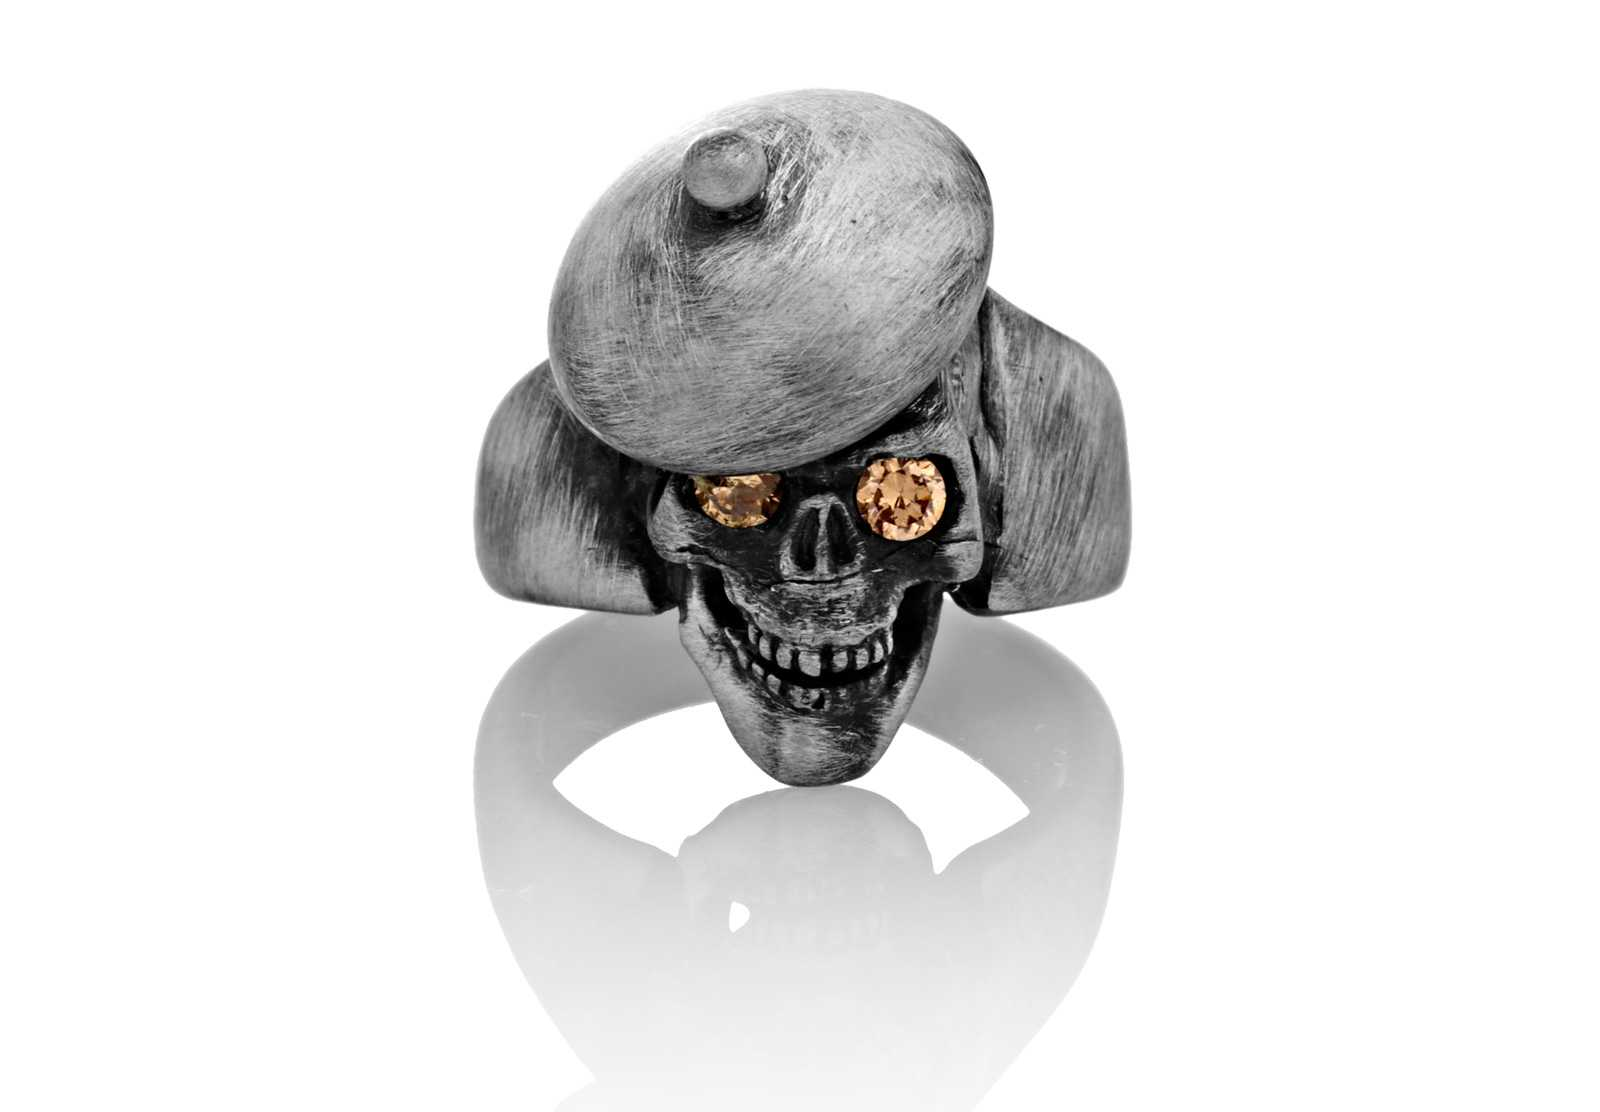 RG104-B The Artist Skull Ring (Front View) in Sterling Silver with Amber Stones, designed by Steve Soffa